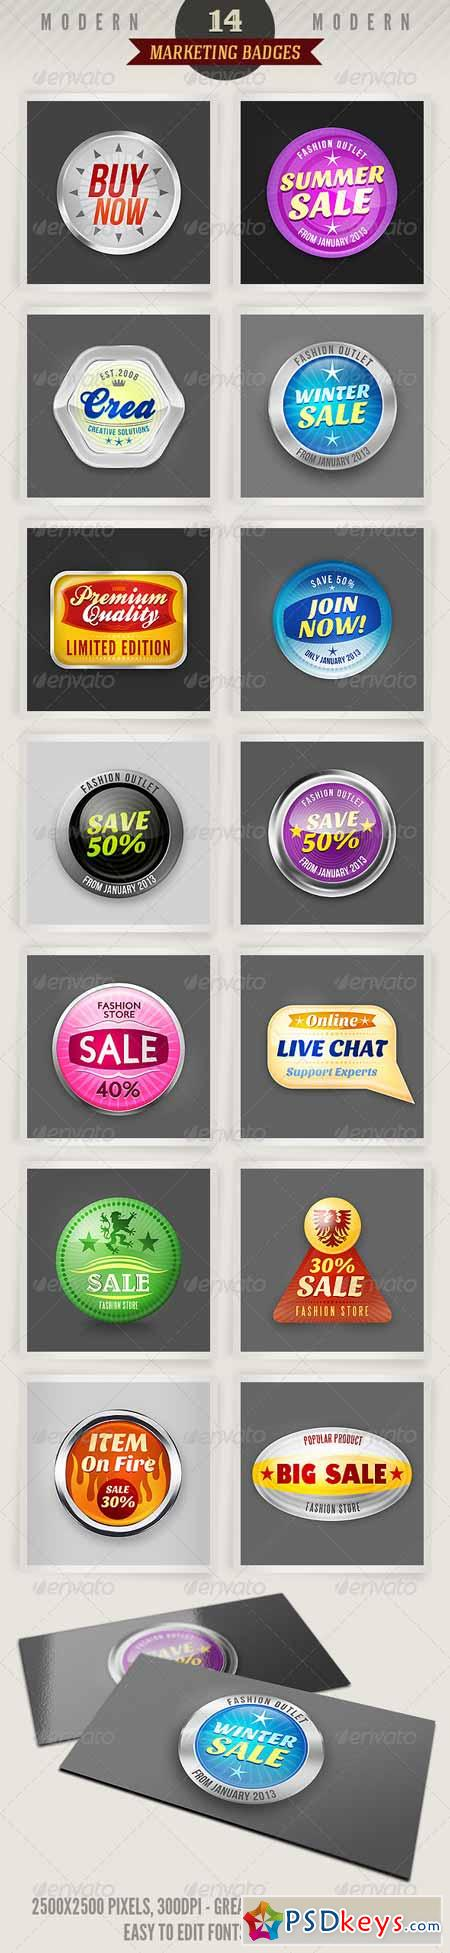 14 Modern Marketing Badges 2622142